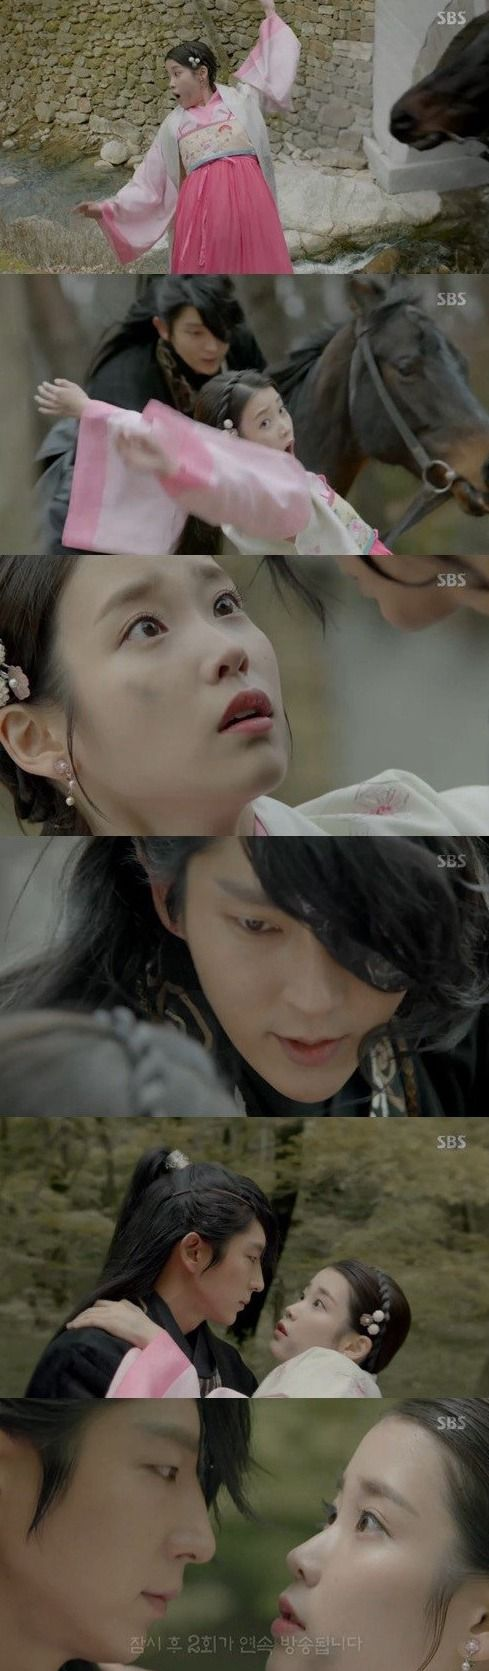 Moon lovers scarlet heart ryeo episode 2 2016 -  Spoiler Added Episodes 2 And 3 Captures For The Kdrama Scarlet Heart